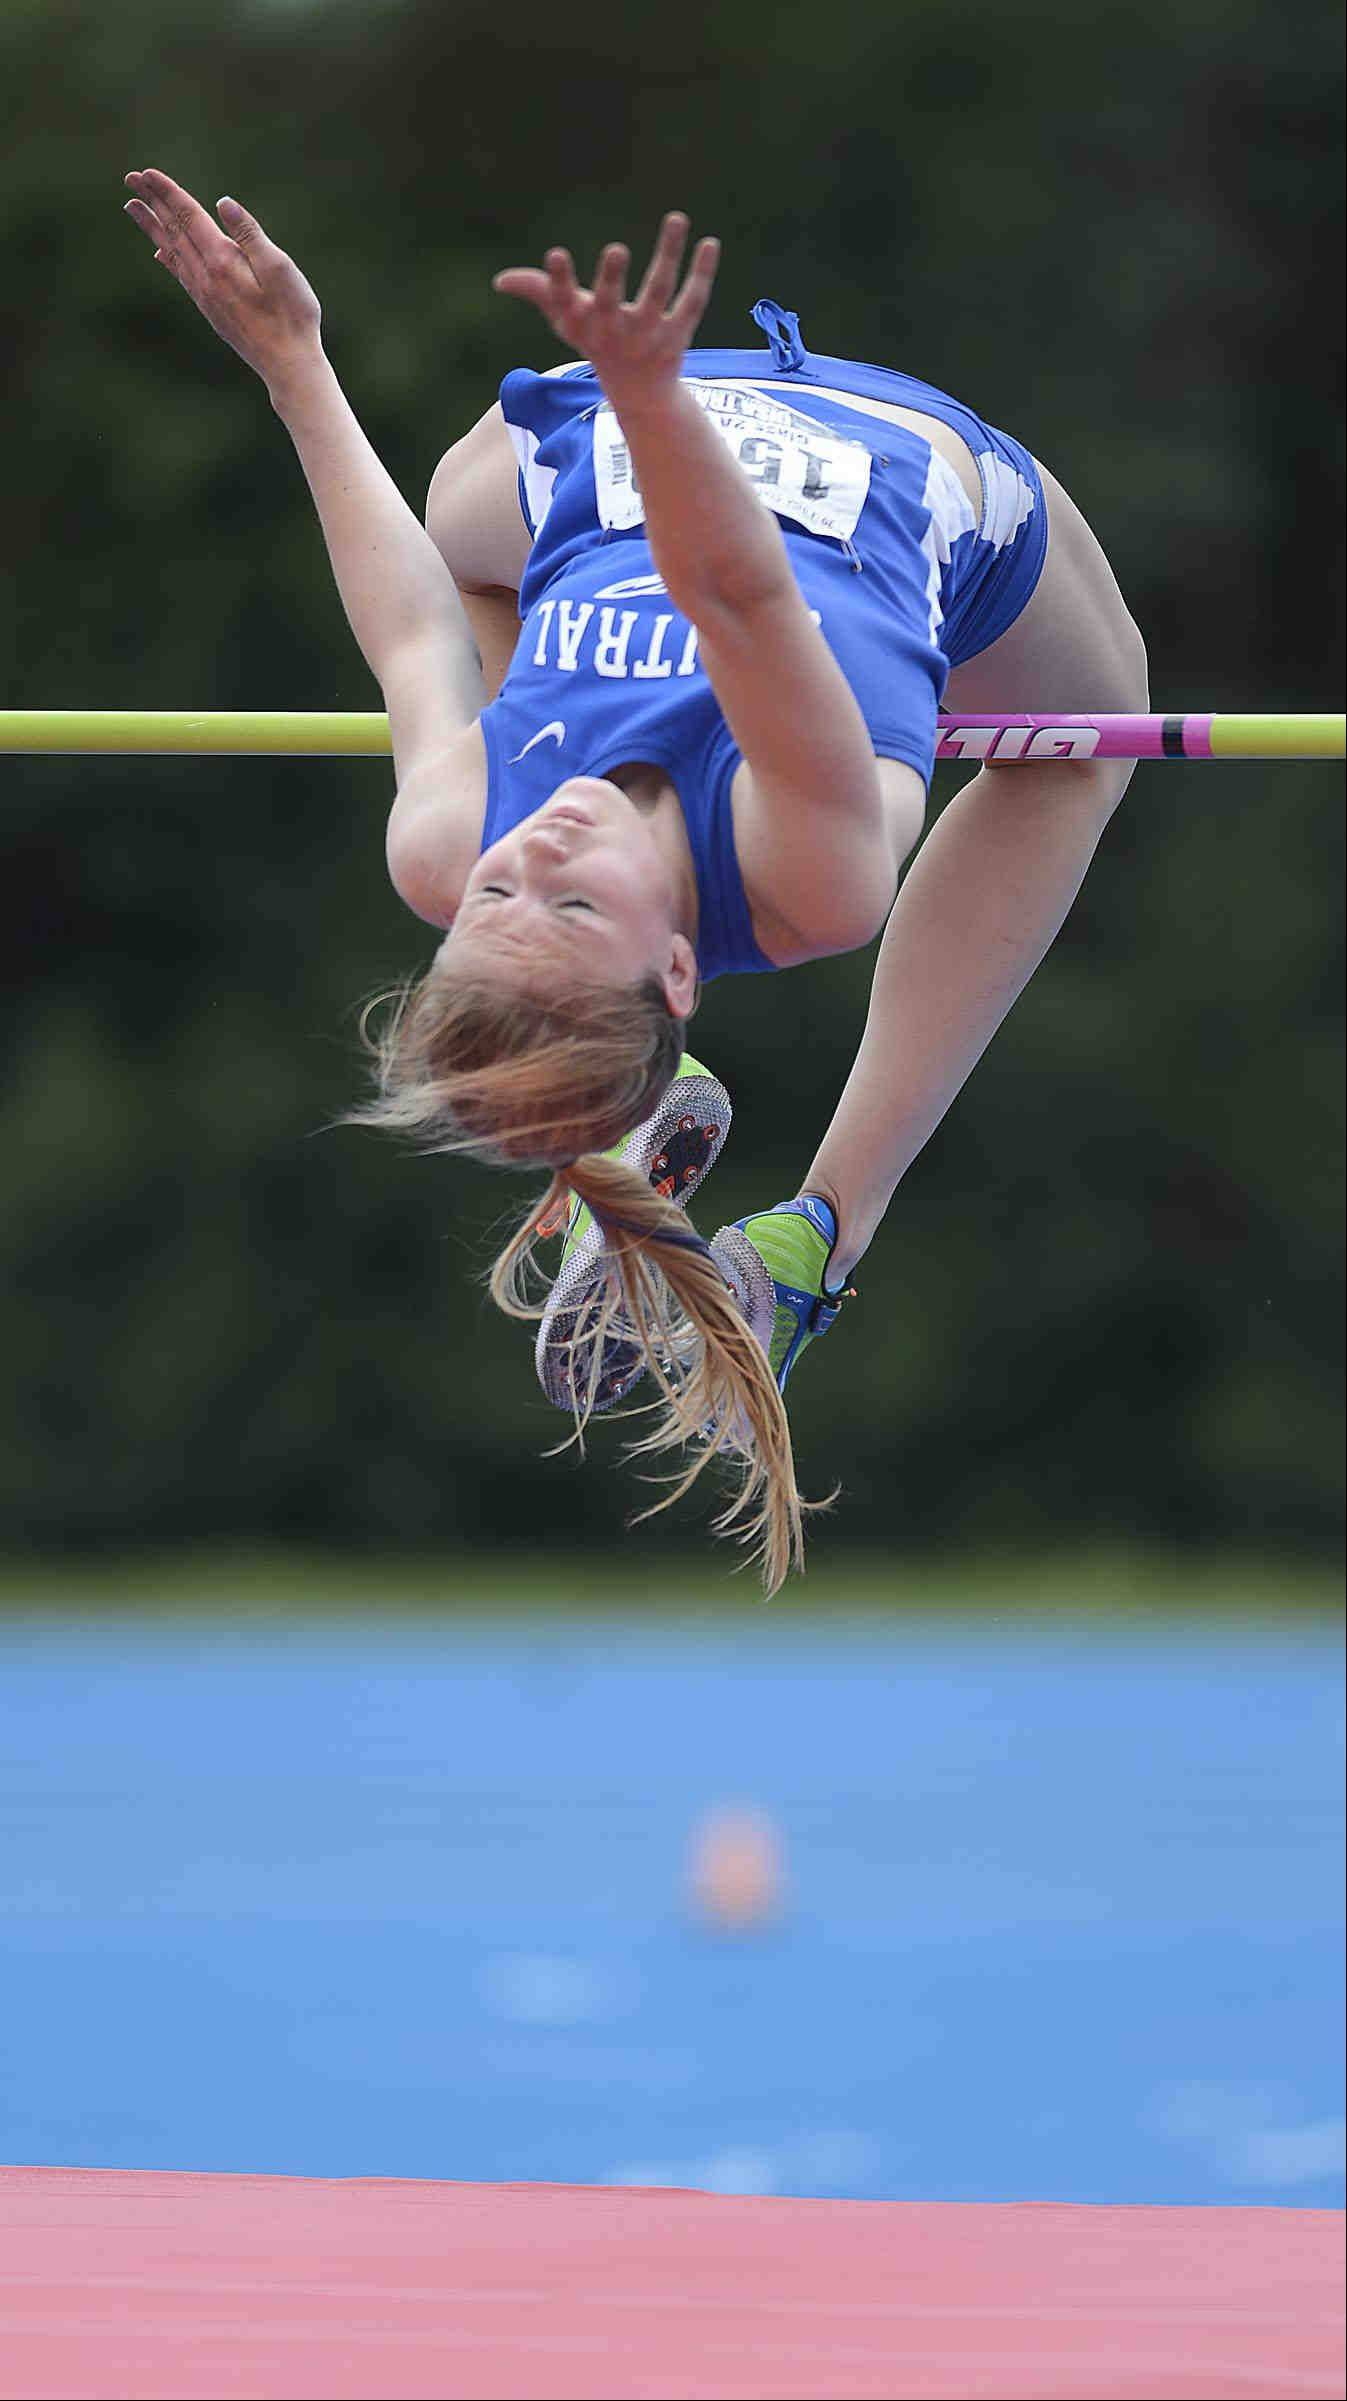 Burlington Central's Katie Trupp clears the high jump bar at firve foot six inches Saturday at the Class 2A girls state track and field finals at O'Brien Stadium at Eastern Illinois University in Charleston.